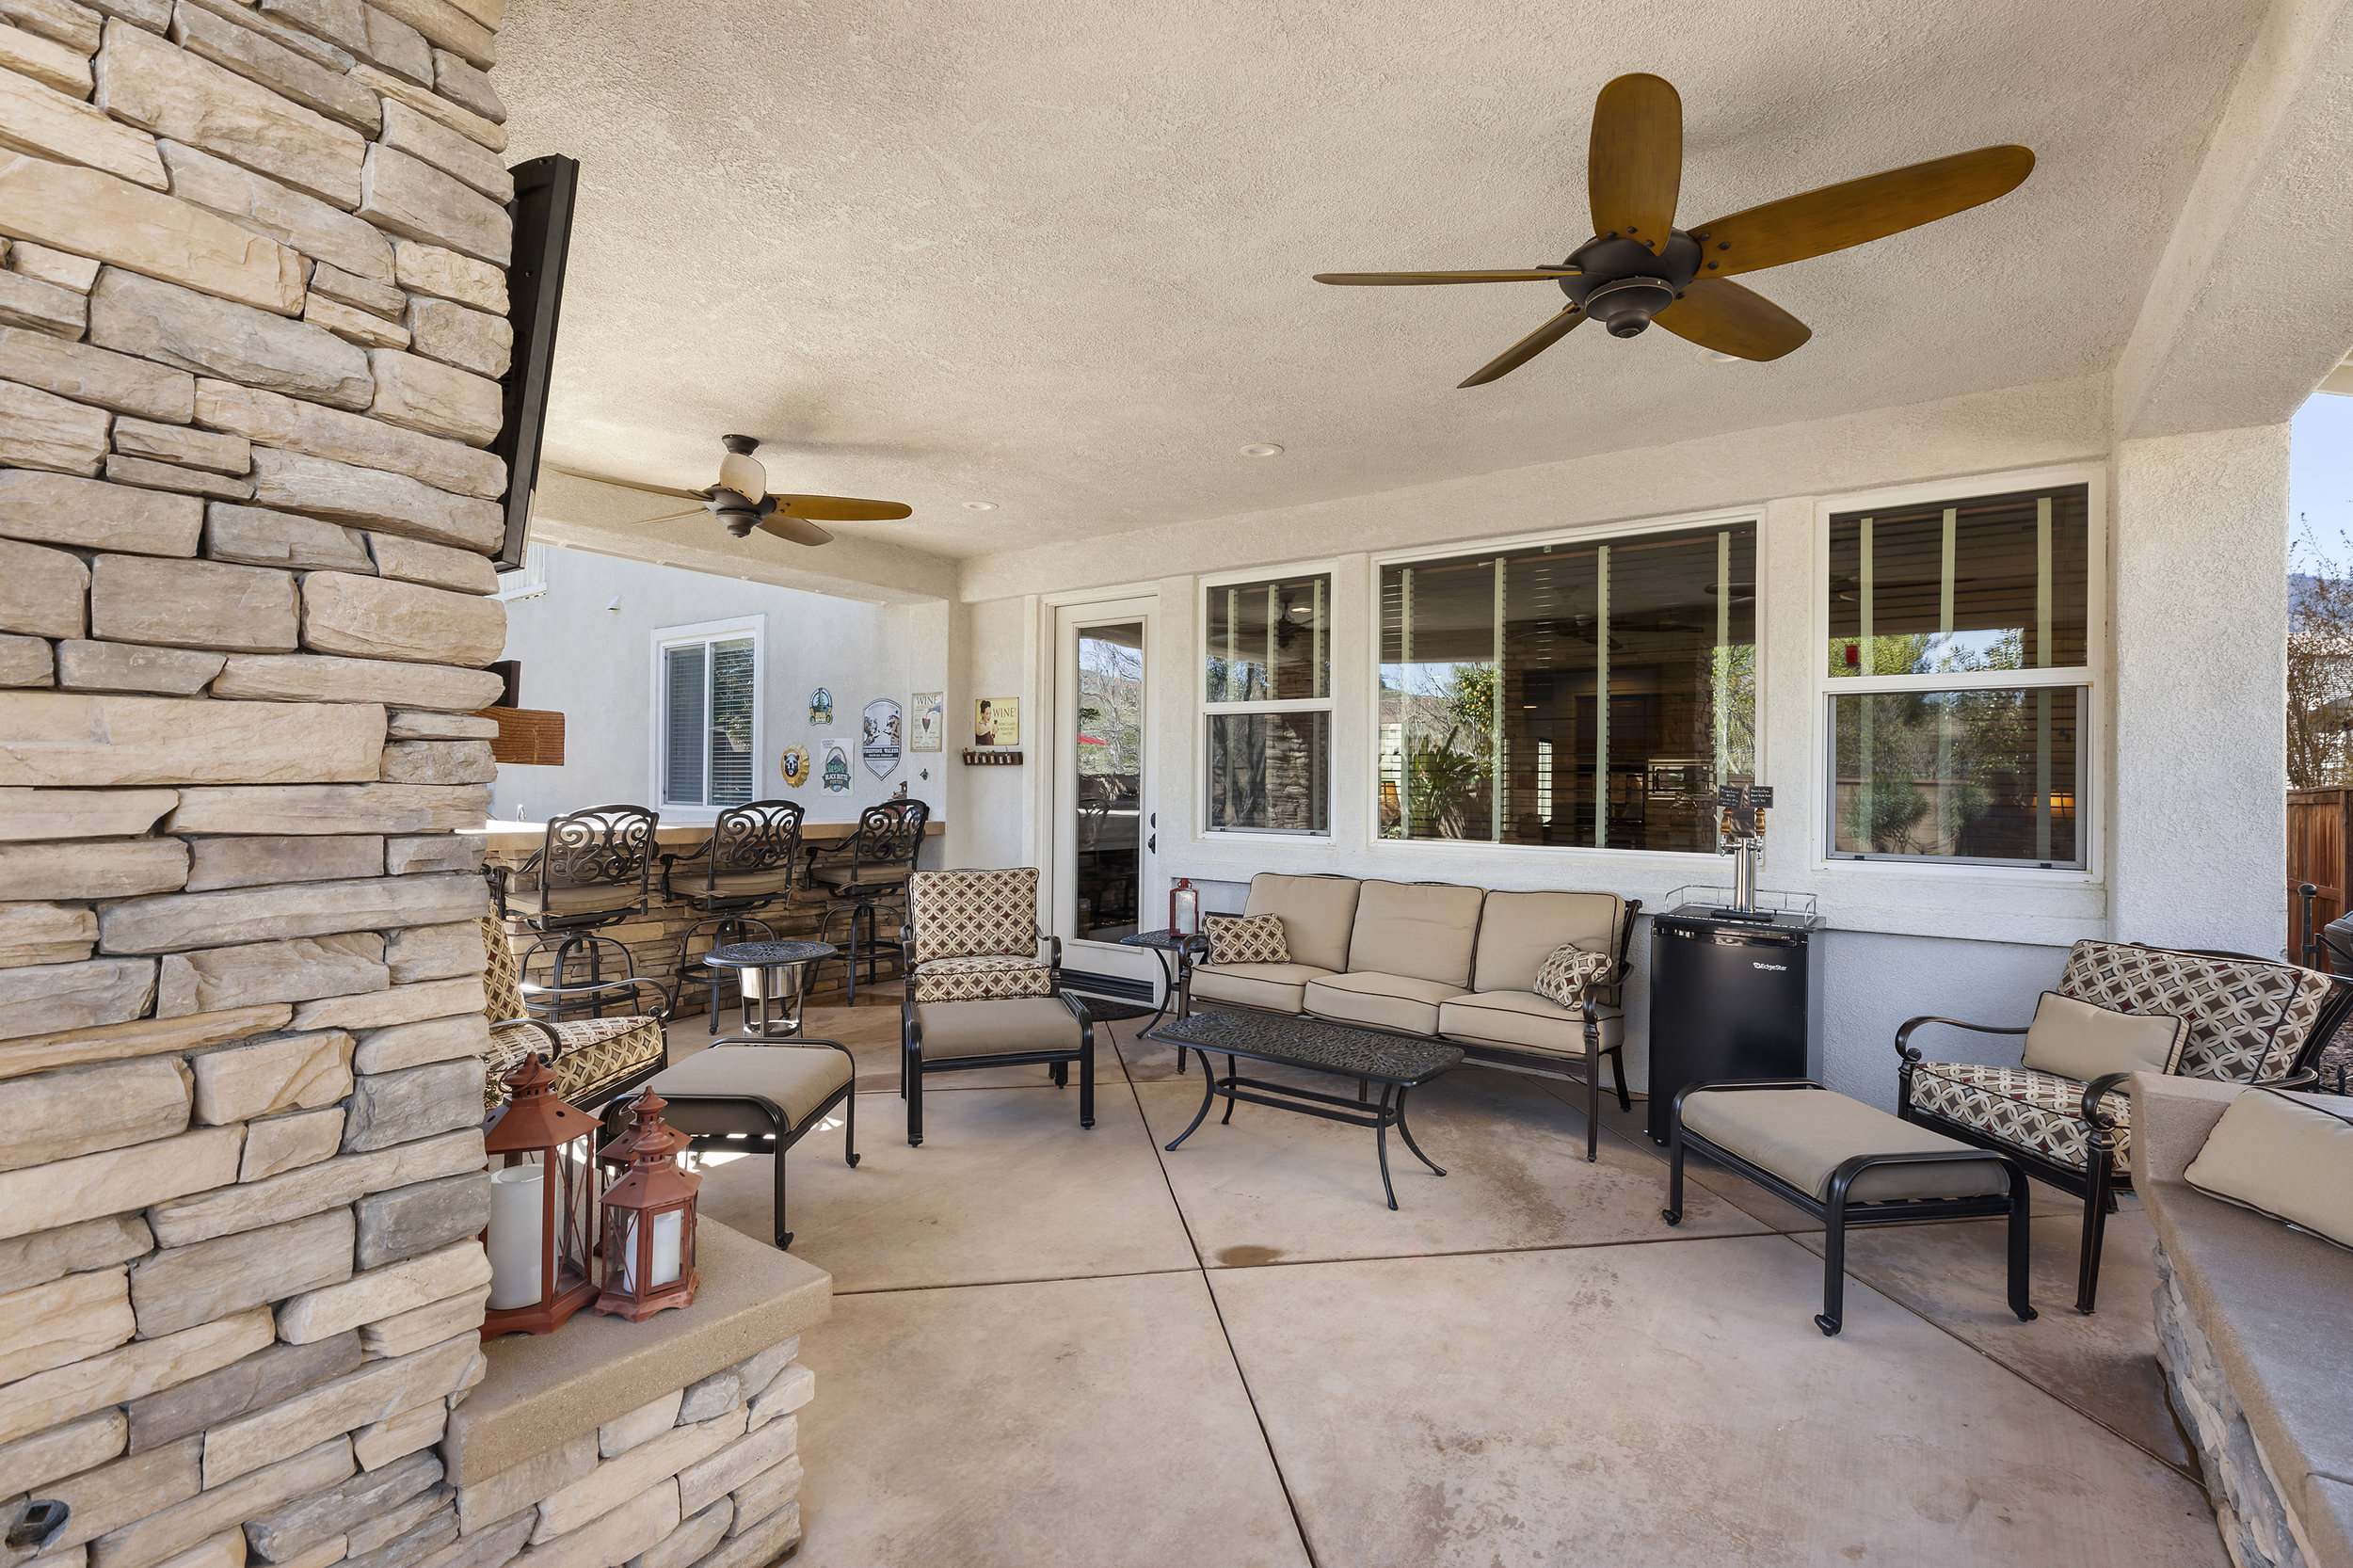 042_Covered Outdoor Room.jpg